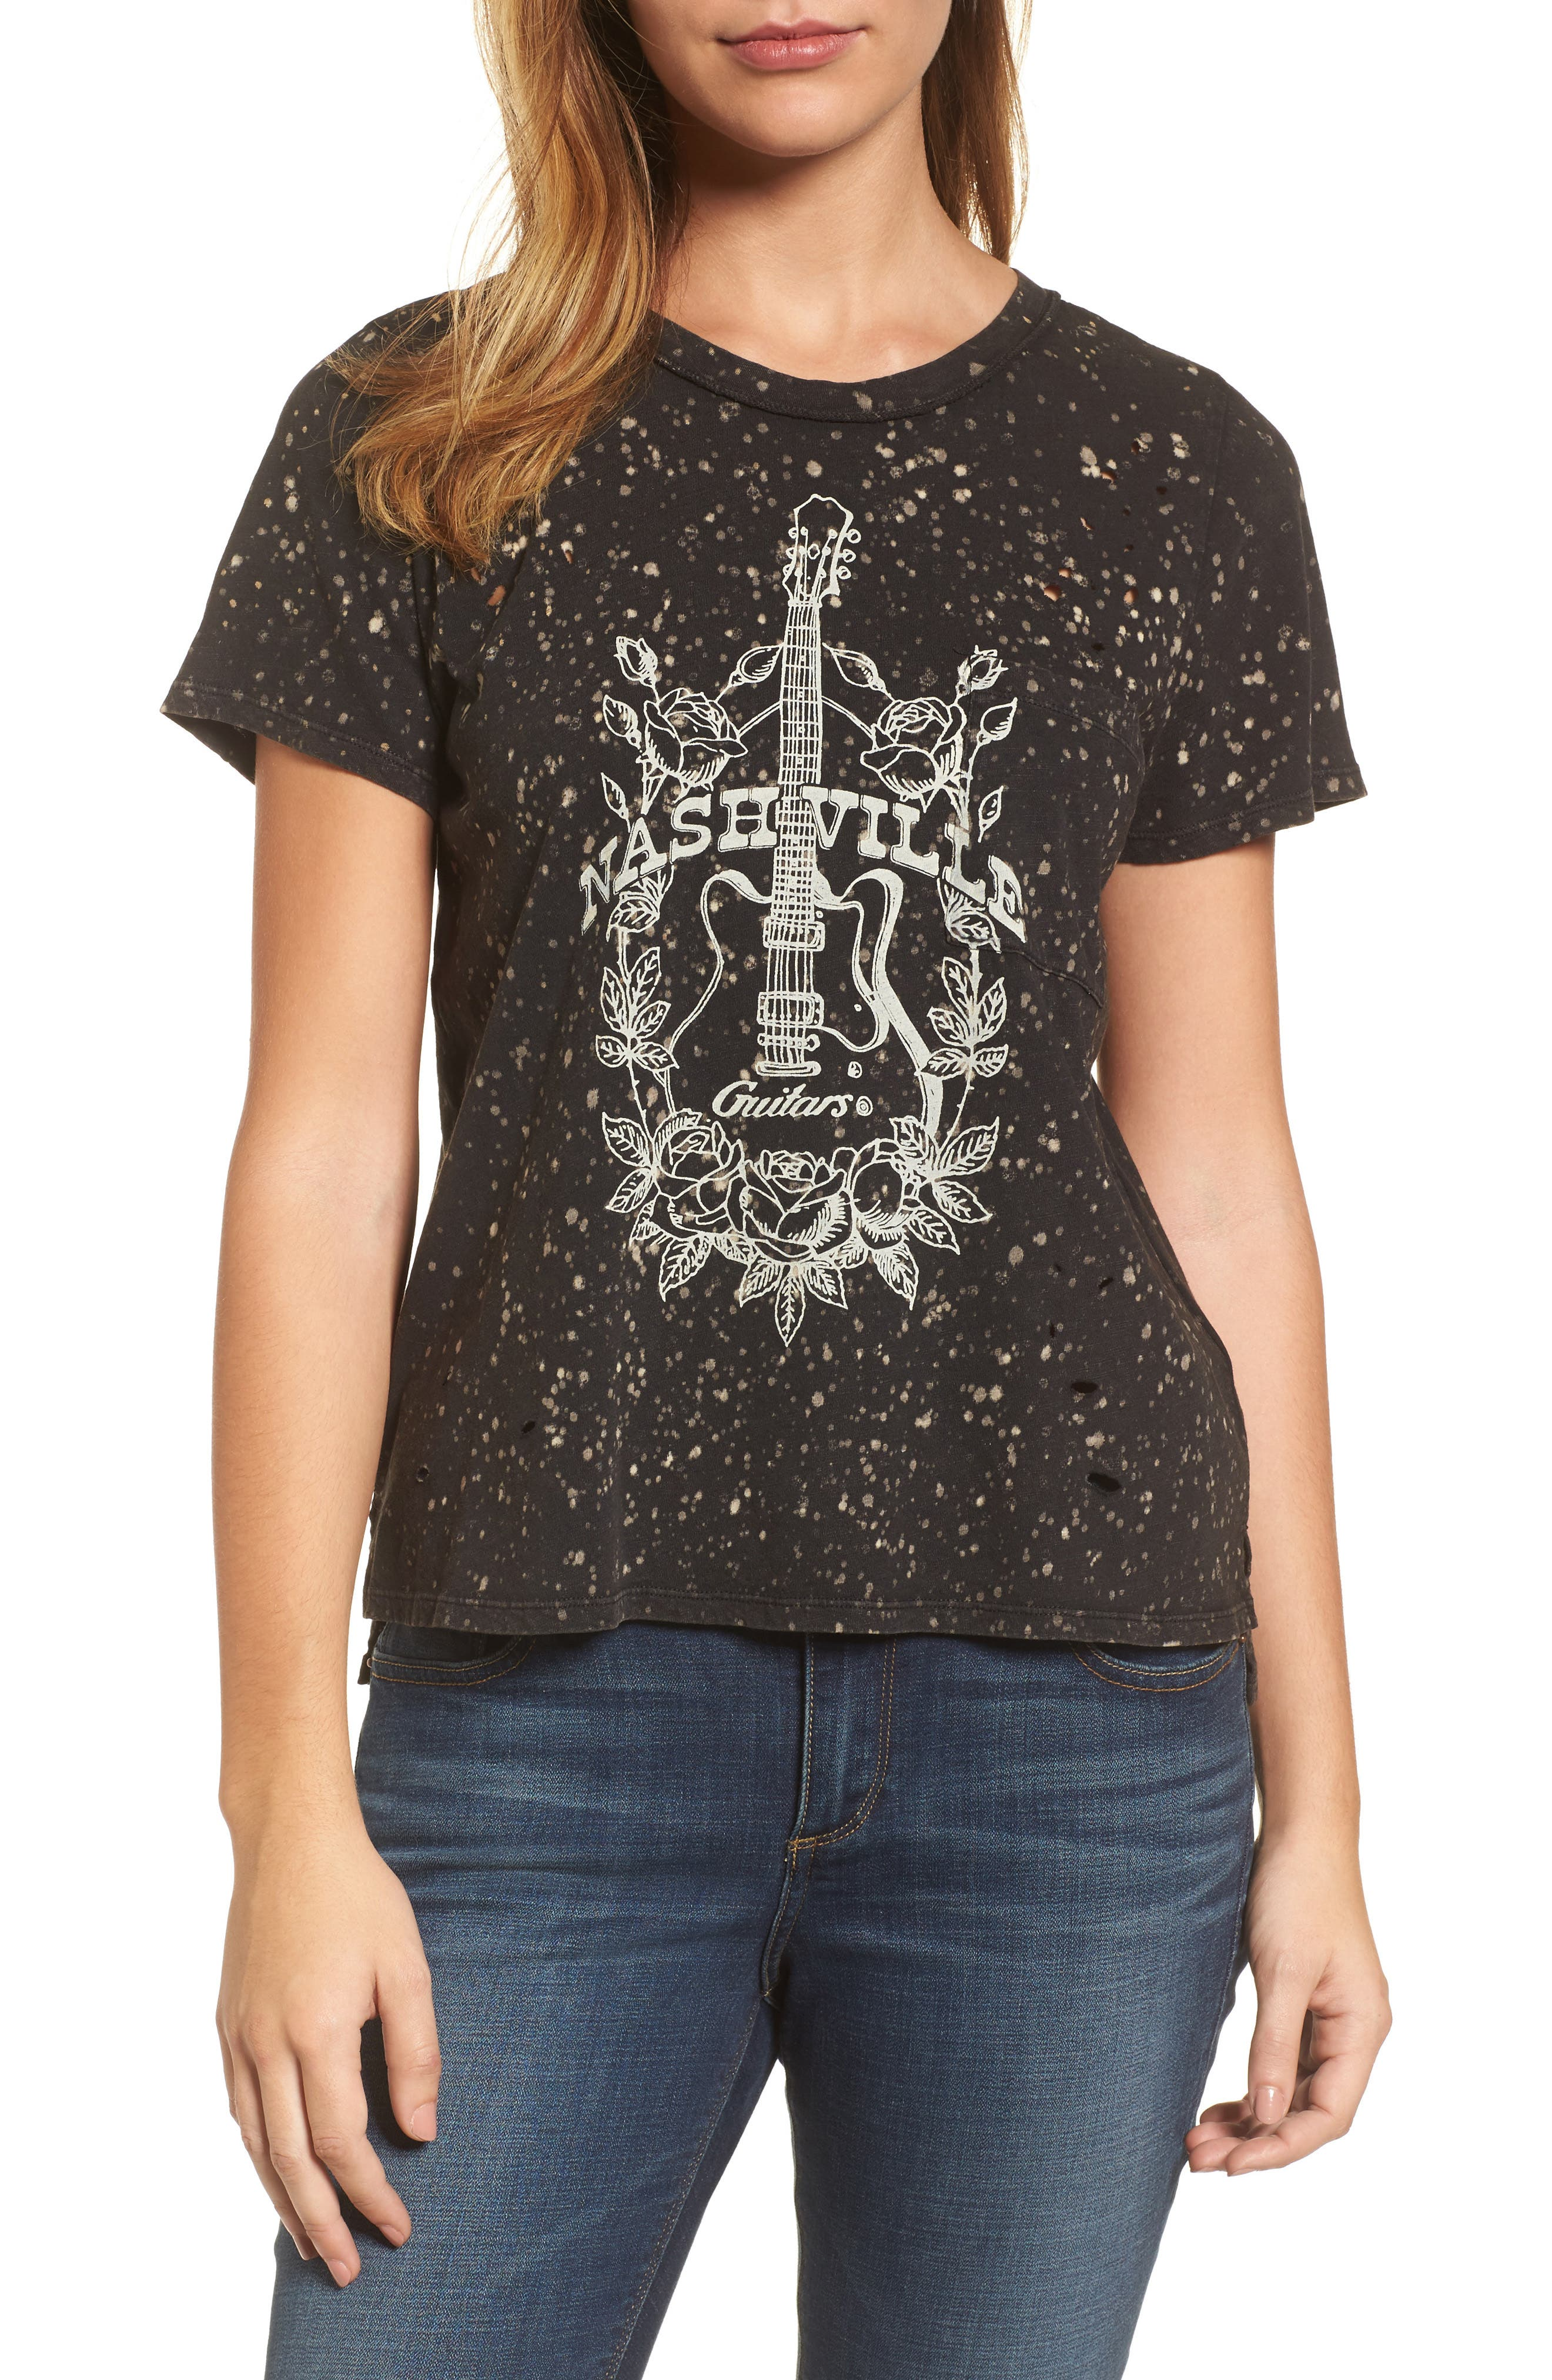 Nashville Guitars Distressed Tee,                             Main thumbnail 1, color,                             Lucky Black